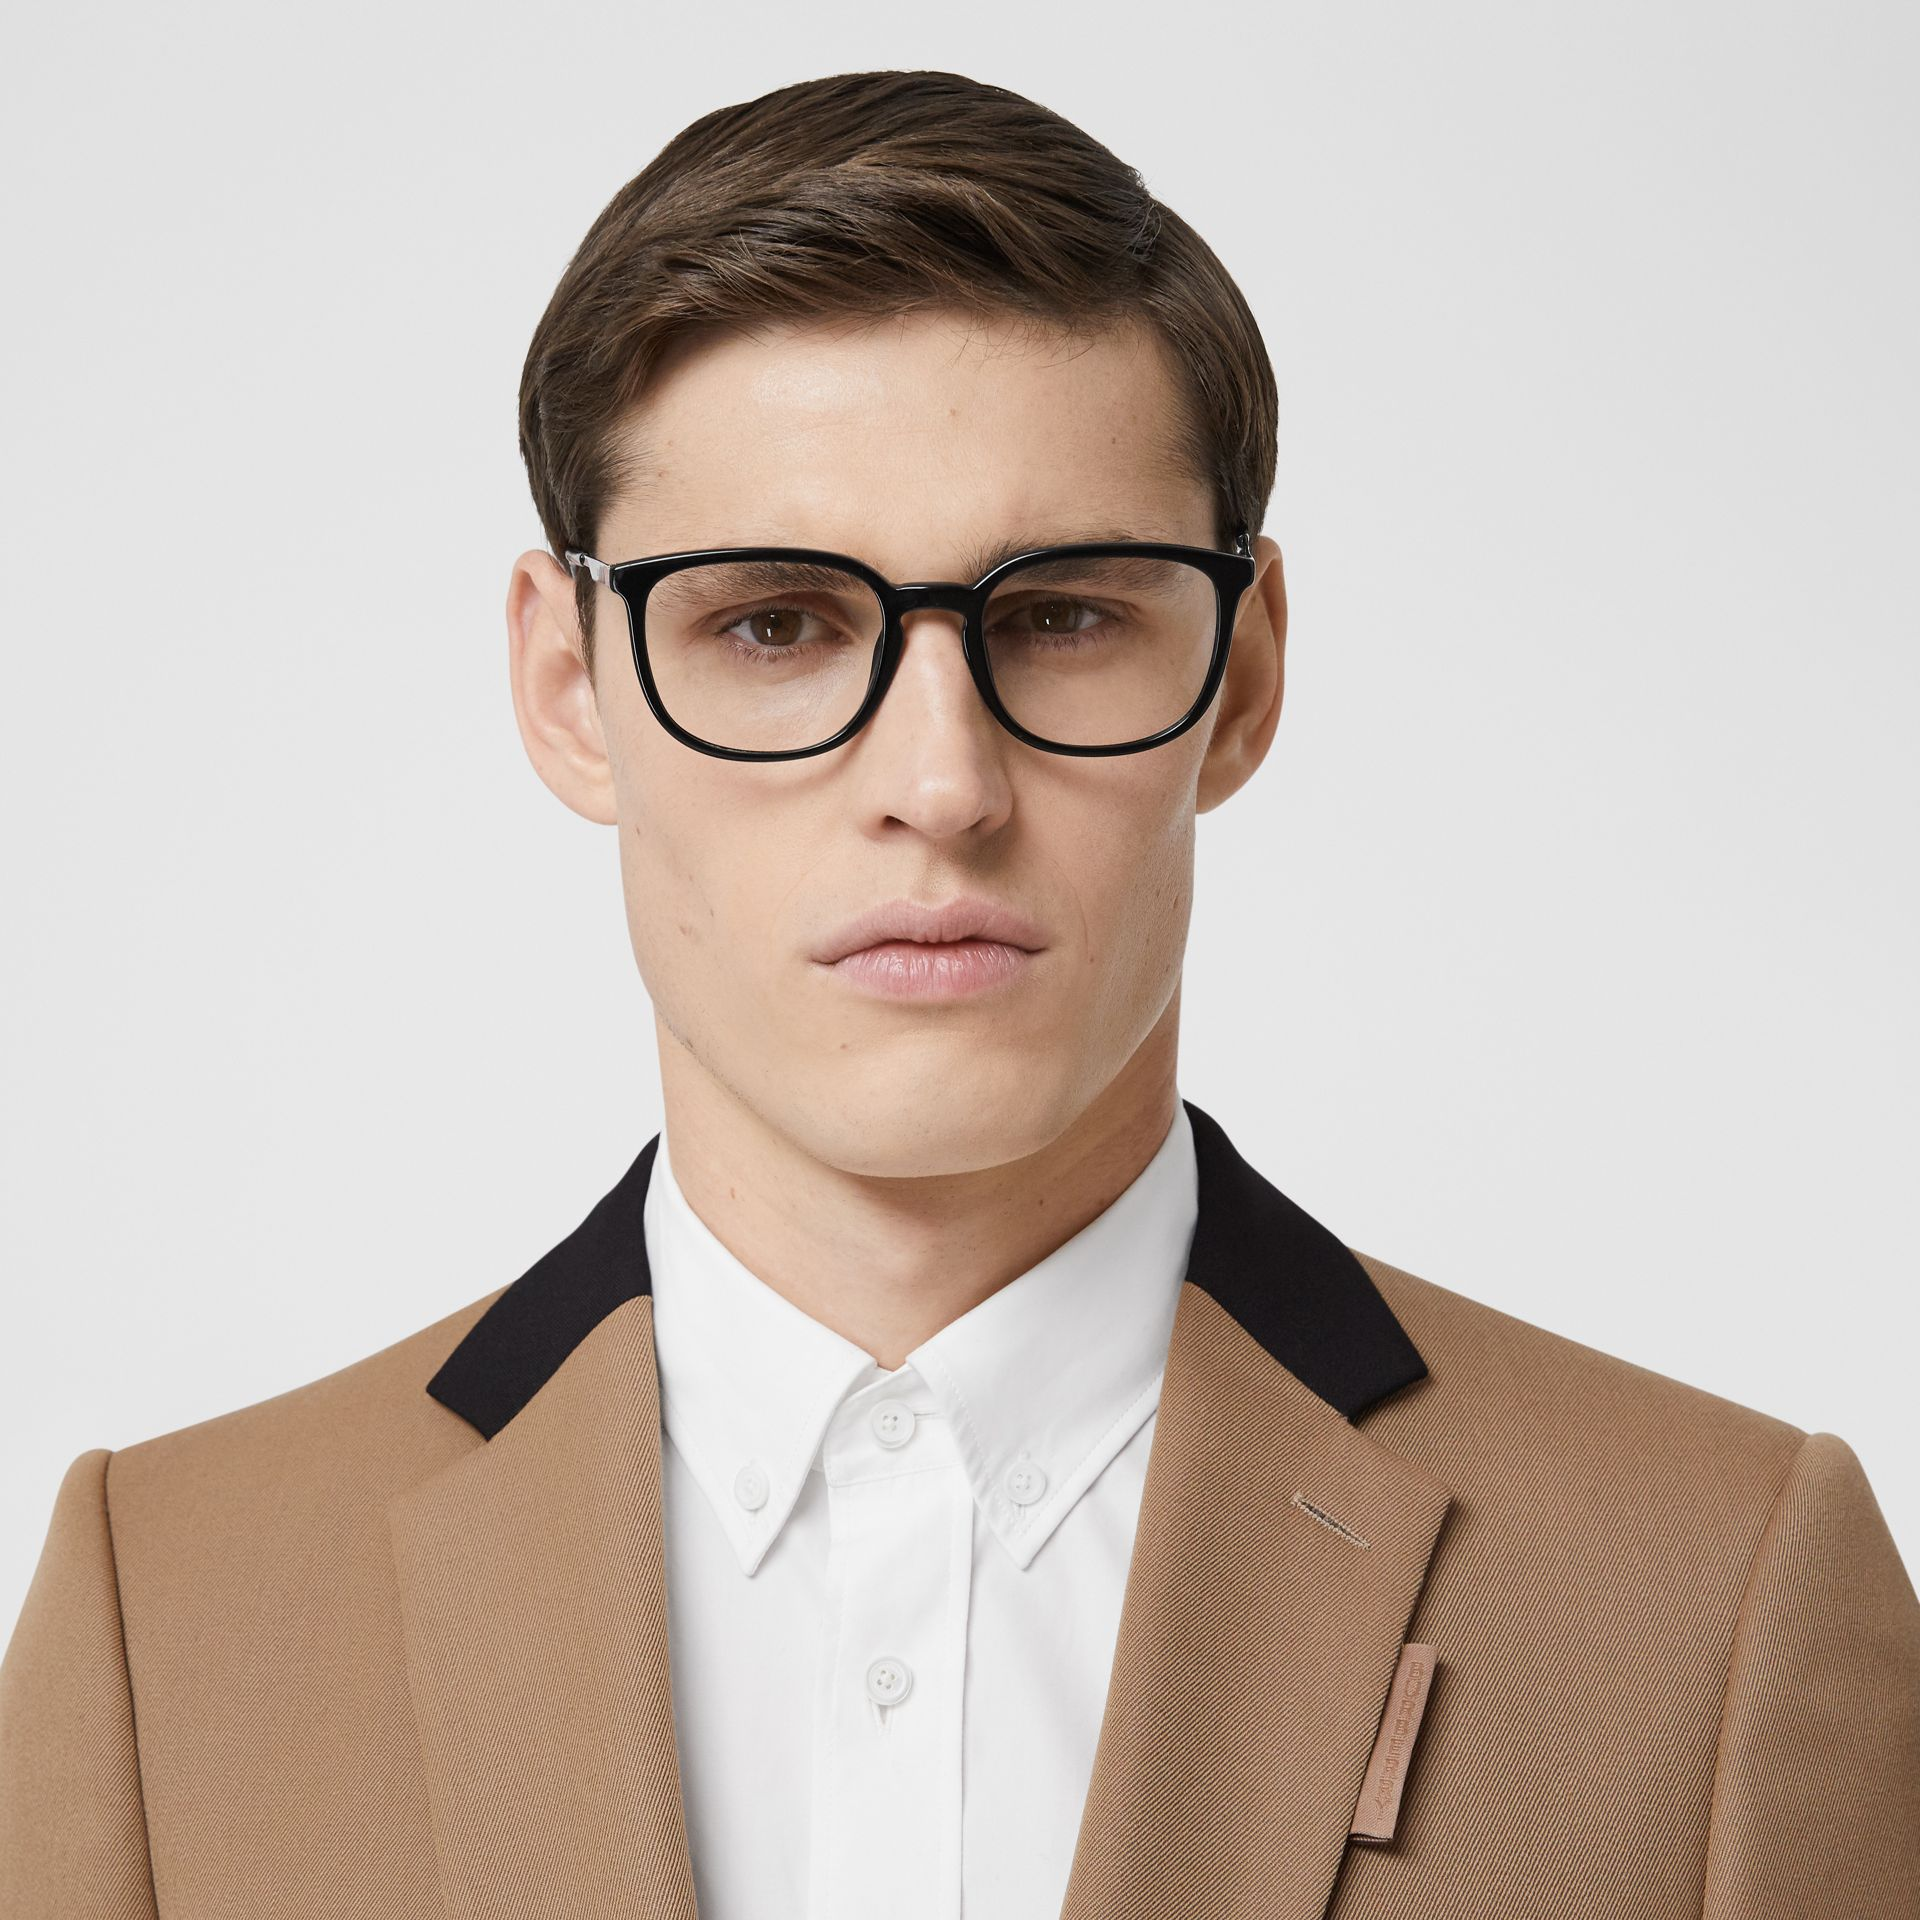 Classic Fit Two-tone Wool Tailored Jacket in Camel - Men | Burberry United Kingdom - gallery image 1